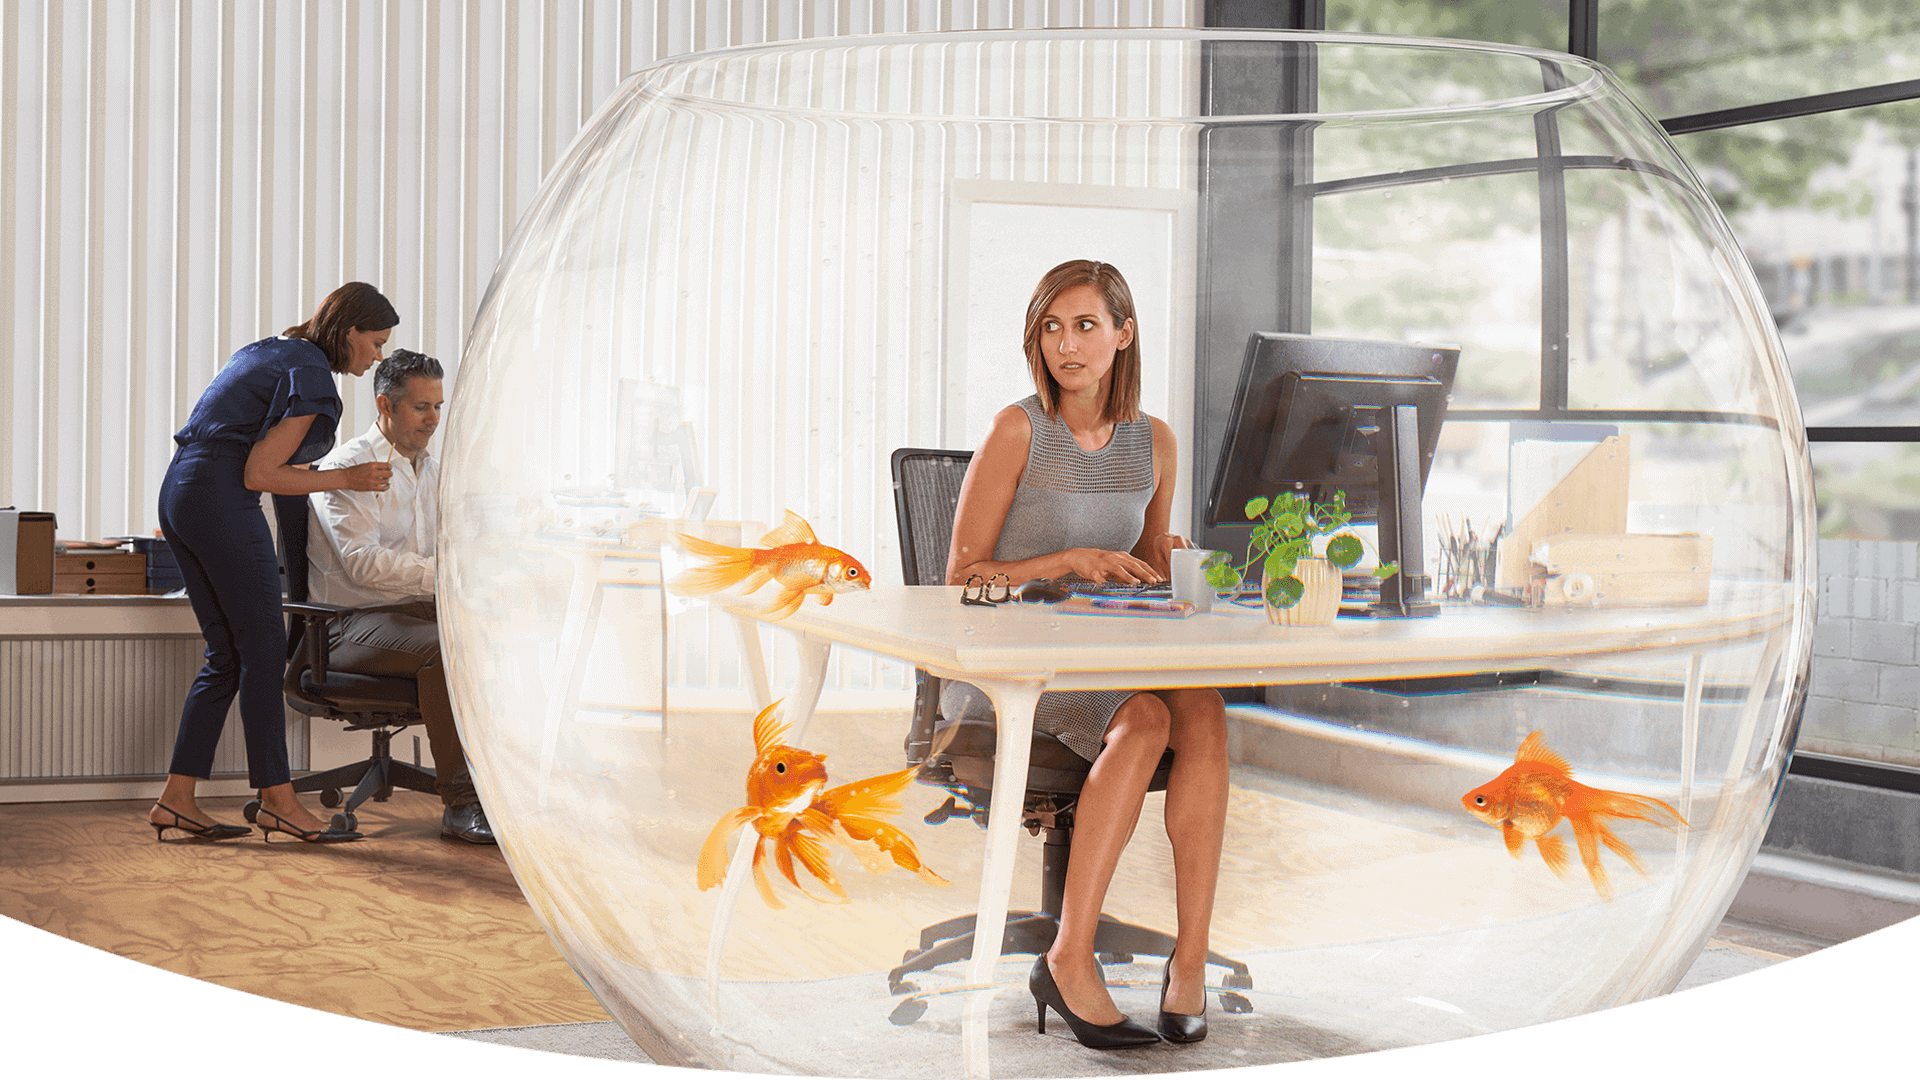 Woman in a fish bowl